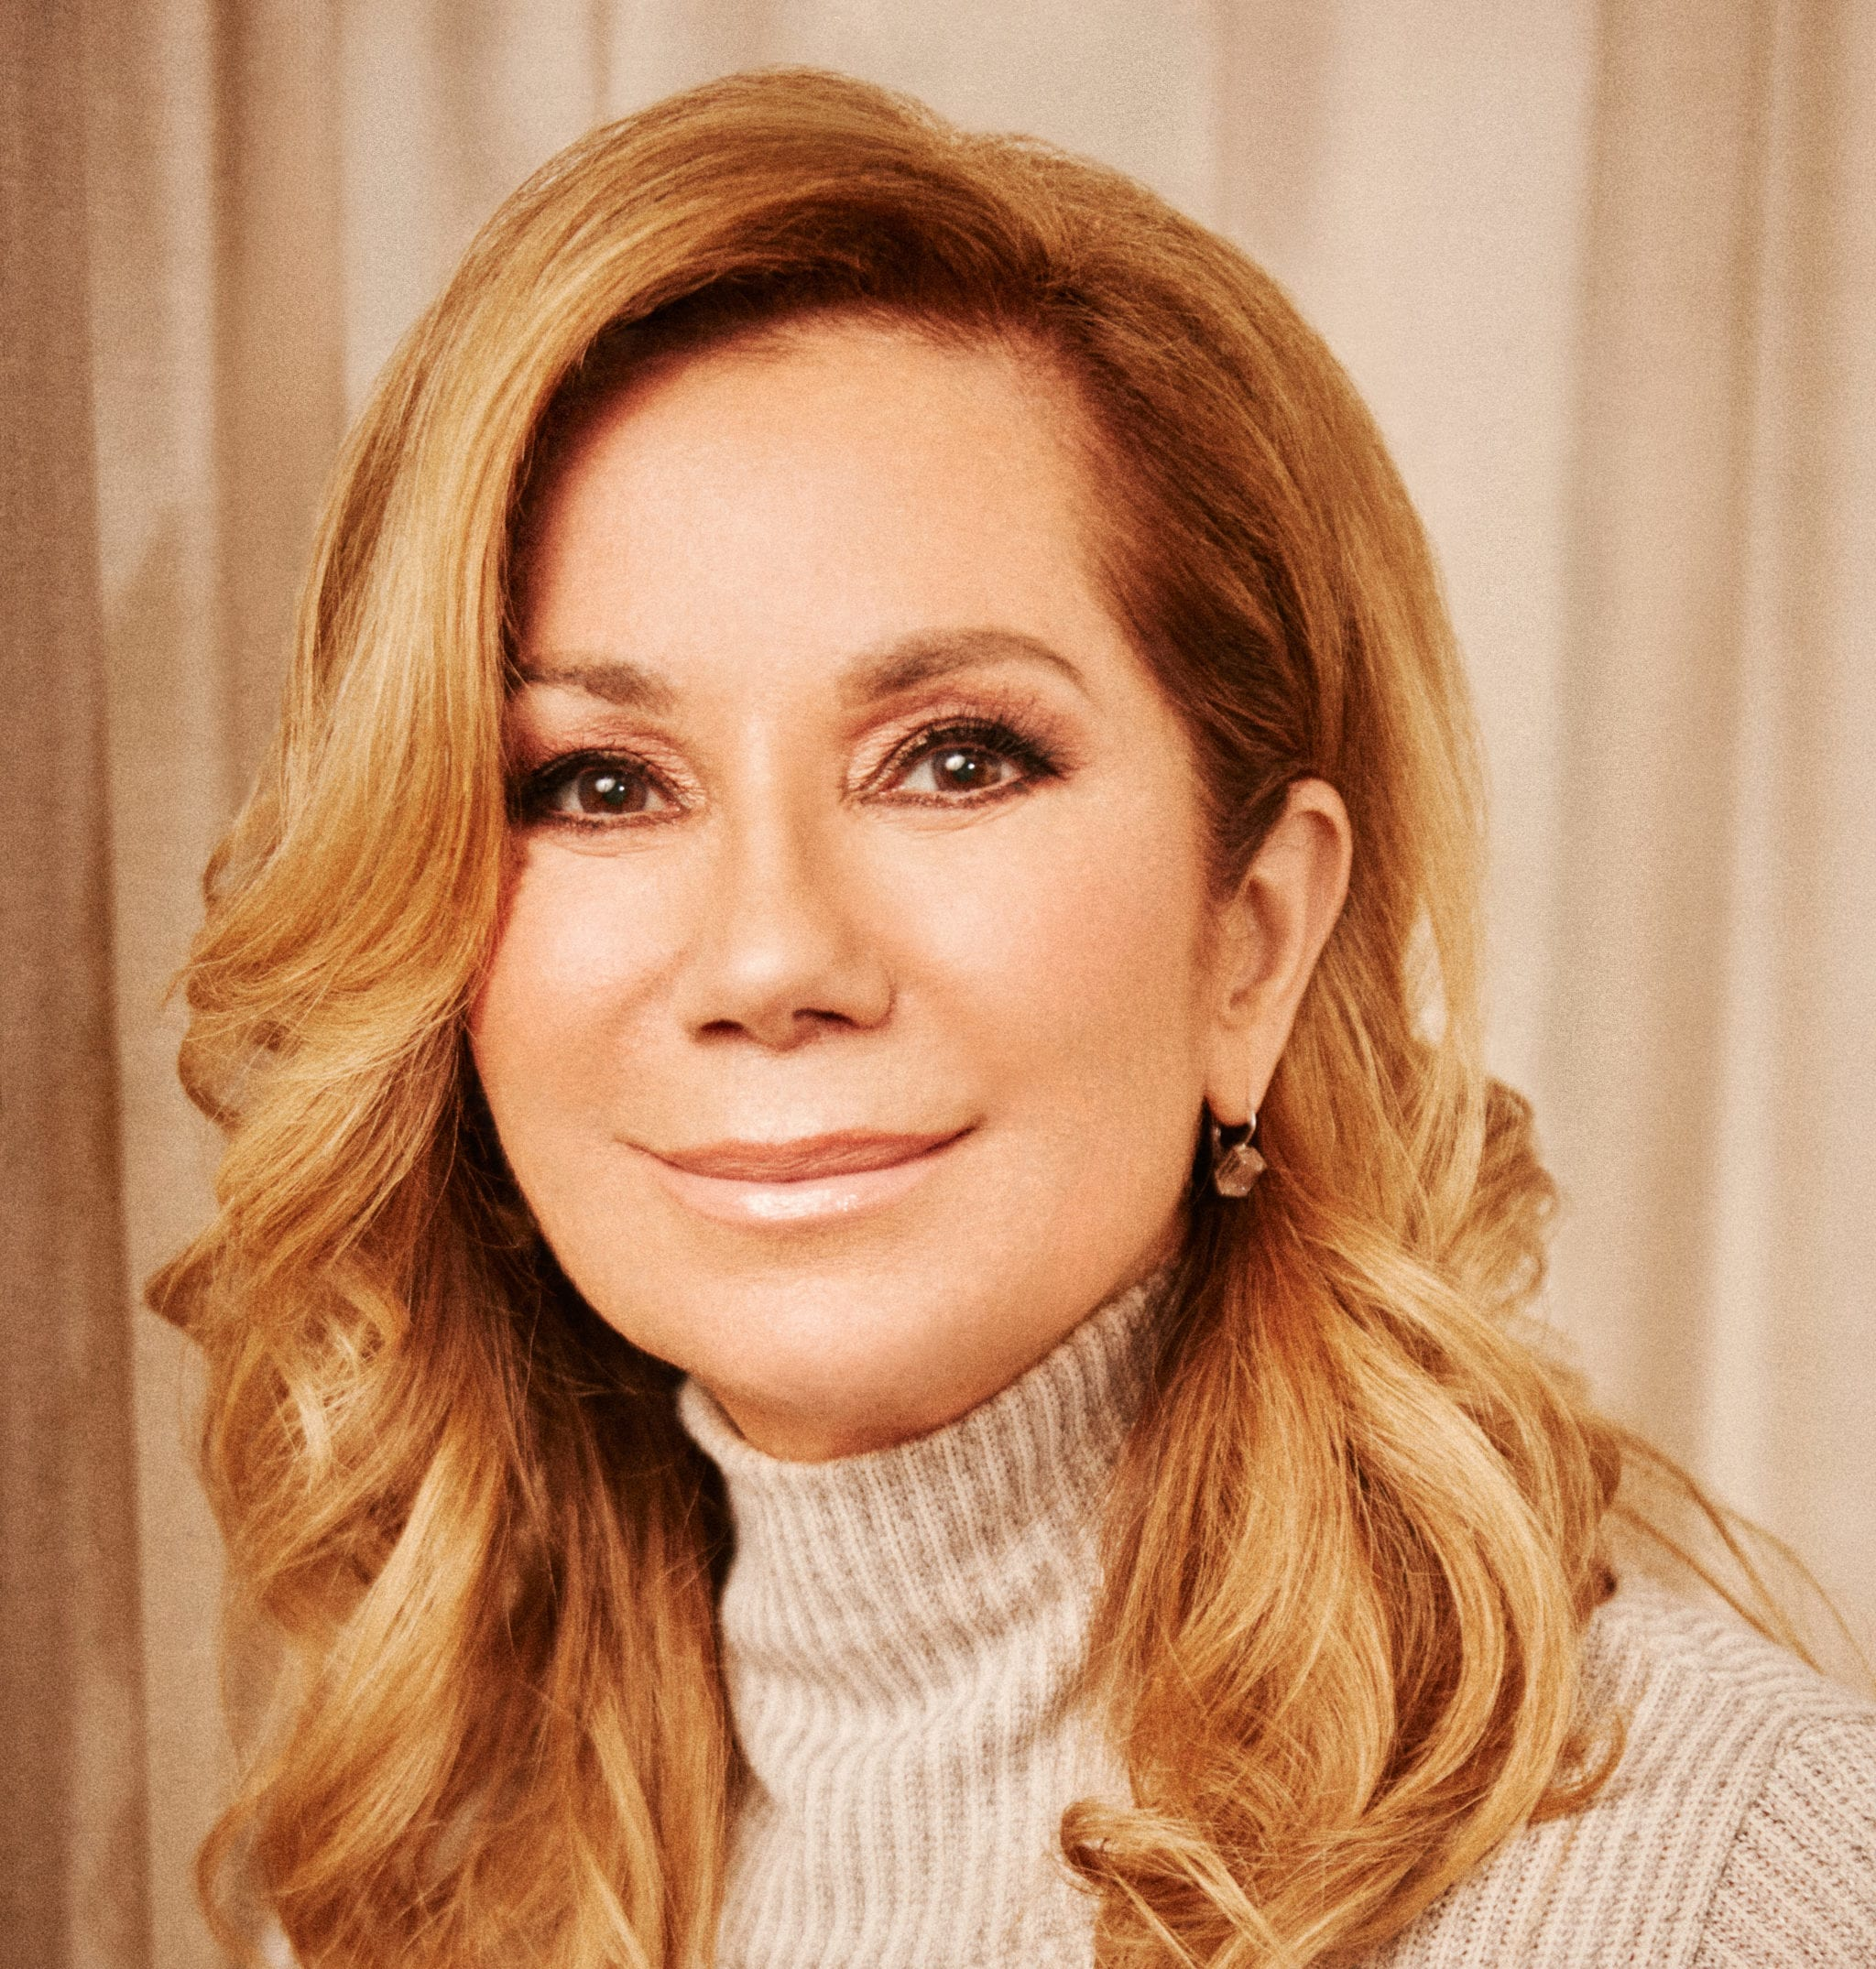 HOLLYWOOD CHAMBER OF COMMERCE TO HONOR TELEVISION PERSONALITY KATHIE LEE GIFFORD WITH VIRTUAL   WALK OF FAME STAR CEREMONY